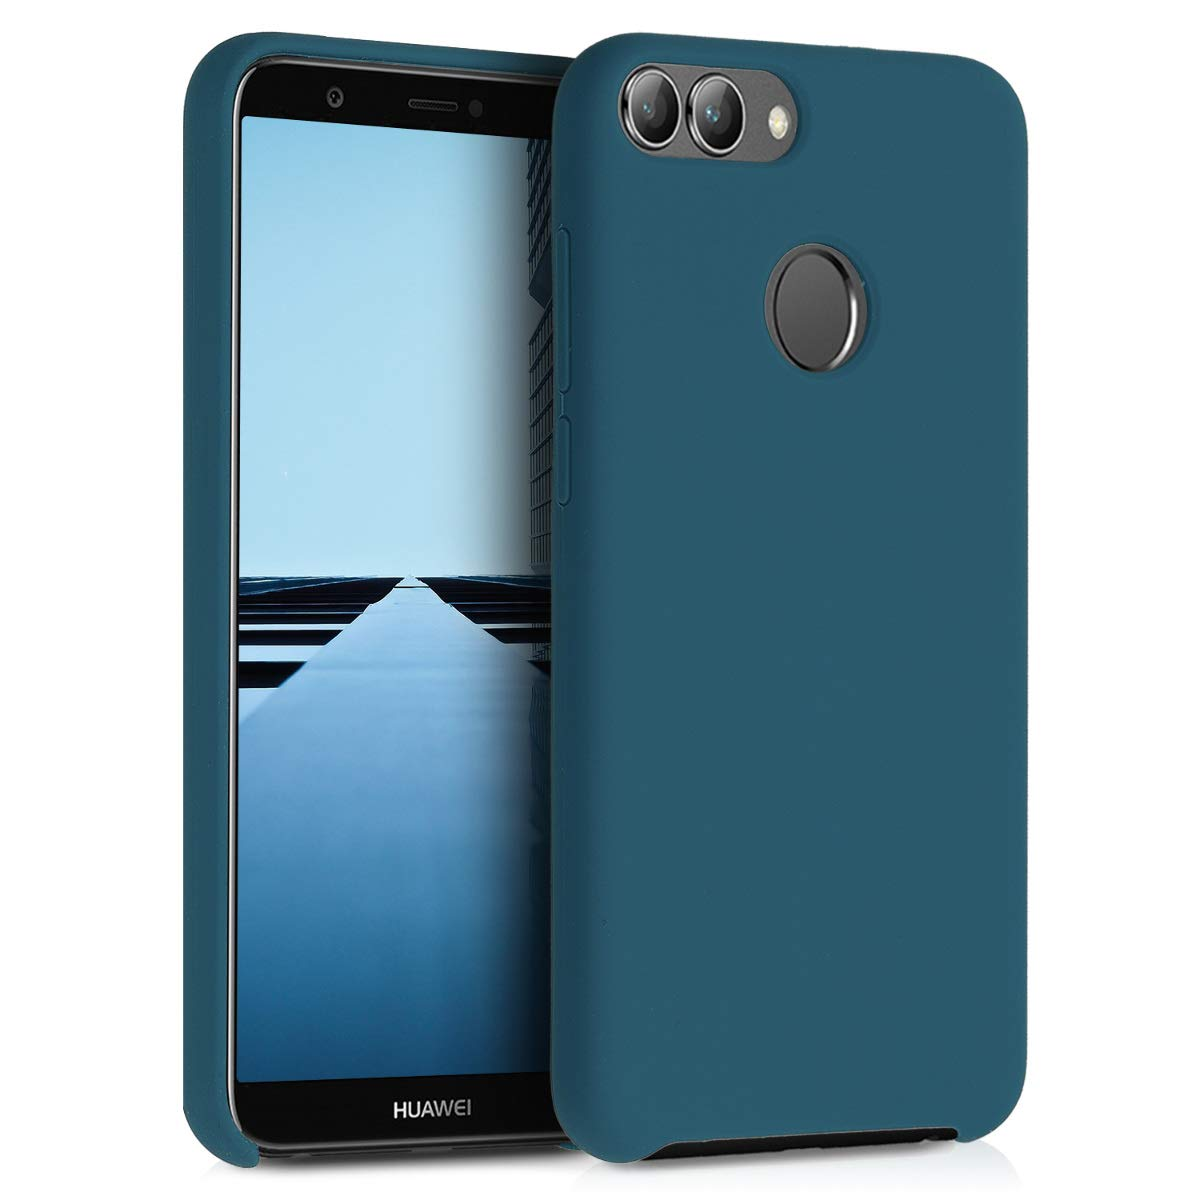 kwmobile TPU Silicone Case for Huawei Enjoy 7S / P Smart - Soft Flexible Rubber Protective Cover - Teal Matte